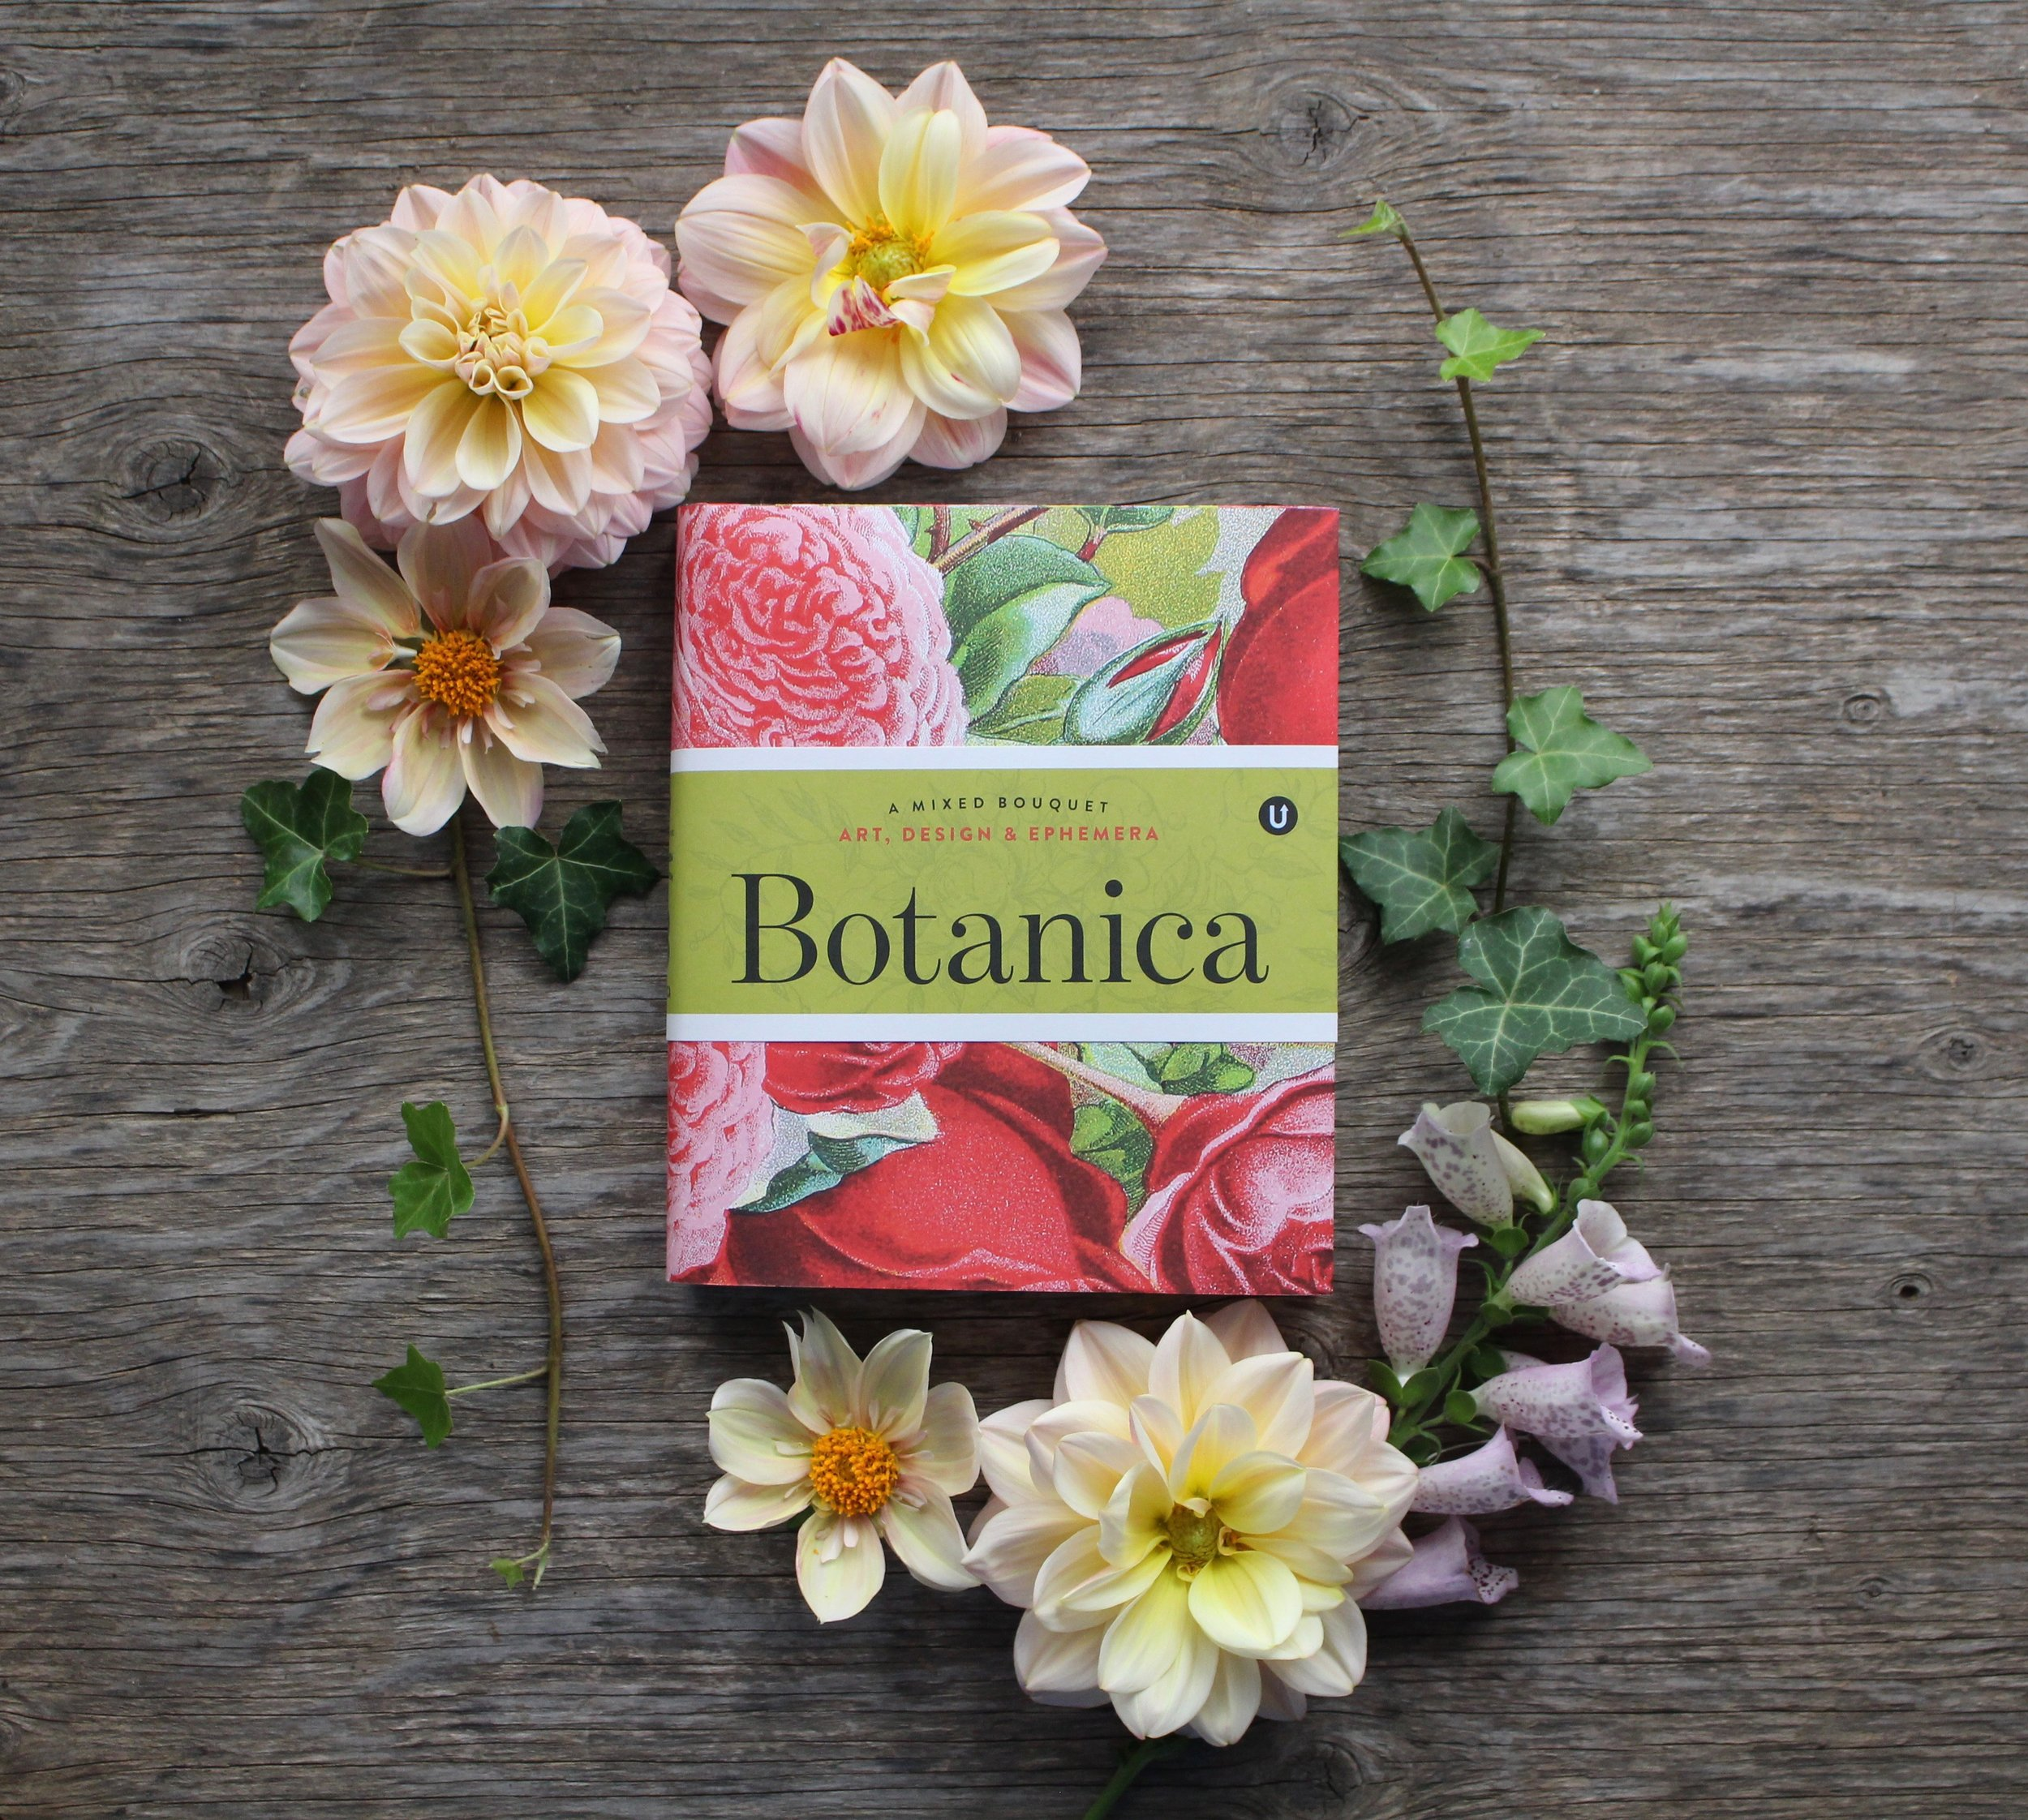 Botanica book cover photo by Antonio Valente.jpg